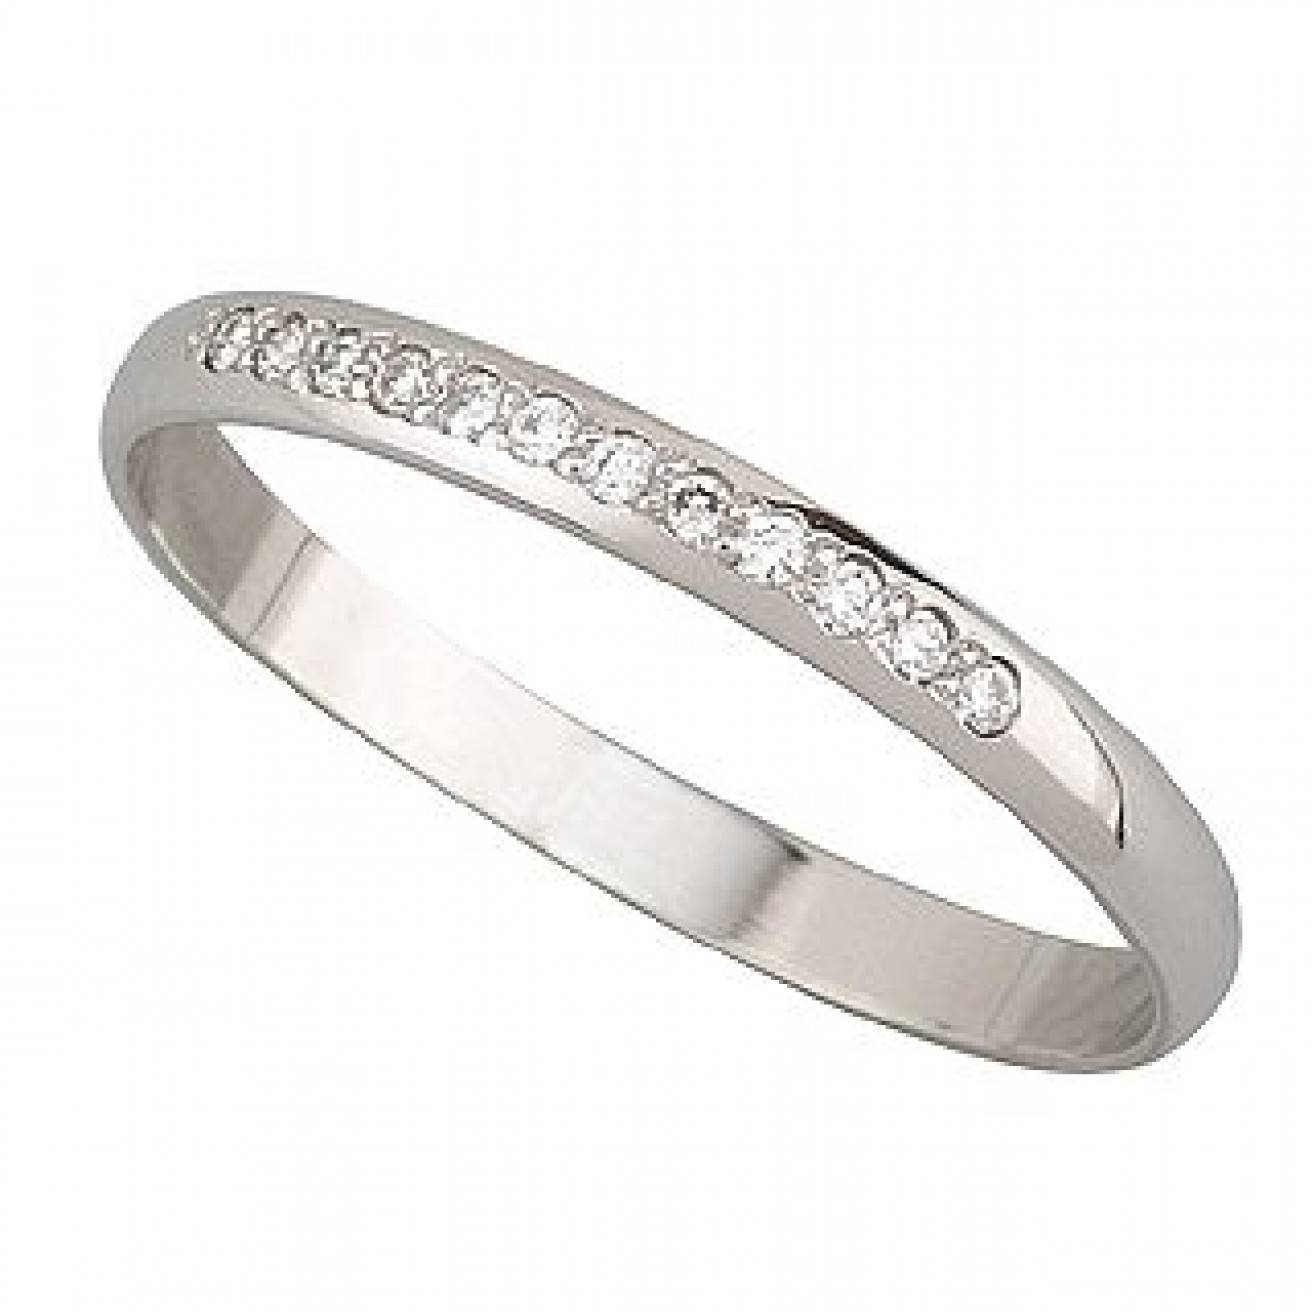 Wedding Rings : Platinum Diamond Rings Platinum Wedding Sets For In Current Platinum Diamond Wedding Bands (View 14 of 15)